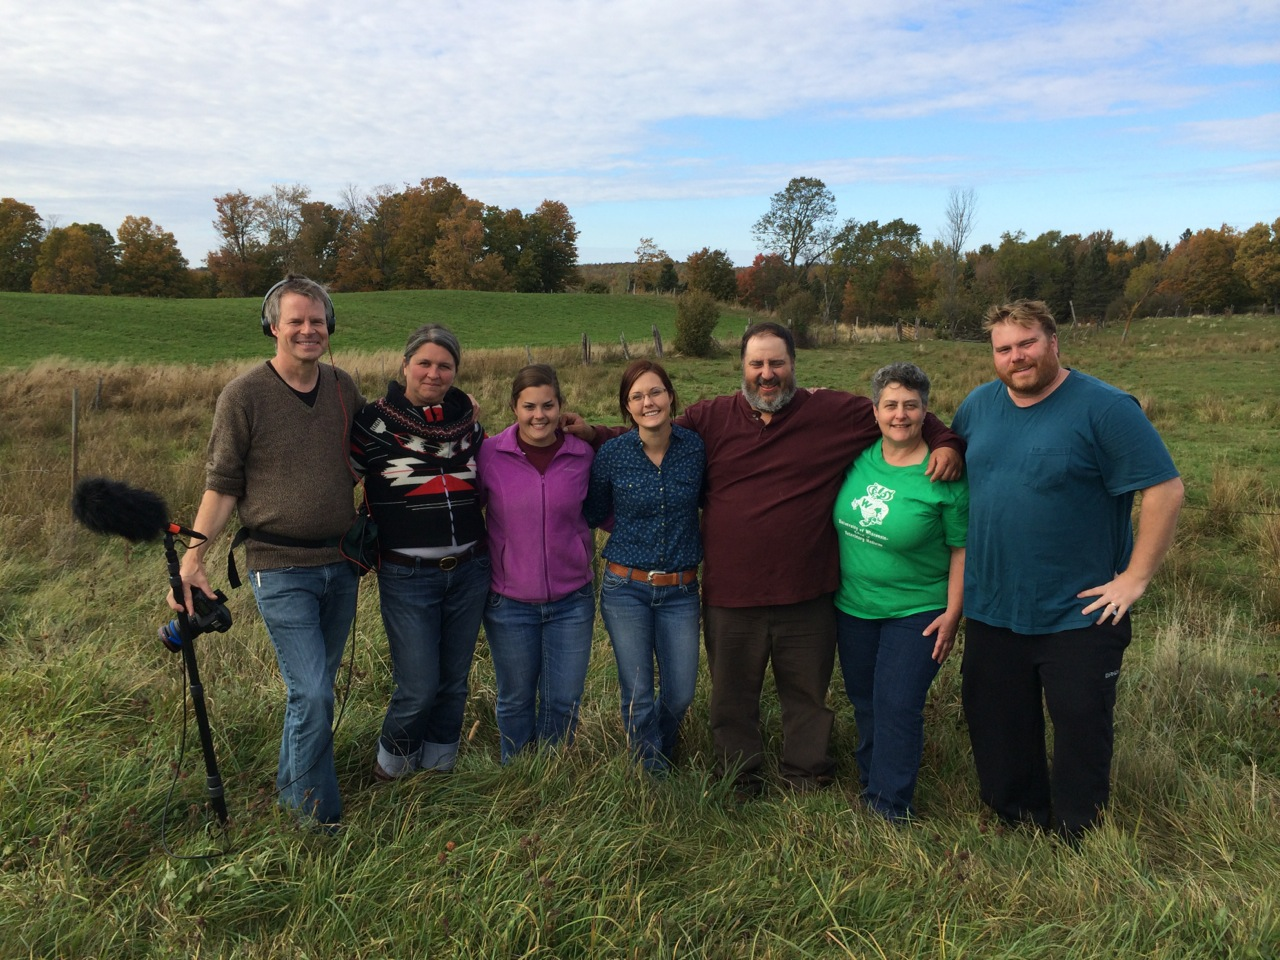 Left to right: Director Doug Pray, Farms Not Factories' Mary Dougherty, The O'Dovero family: Faye, Angelena,Don and Wendy, and Cinematographer Edwin Stevens. At the O'Dovero farm in Mellen, Wisconsin.